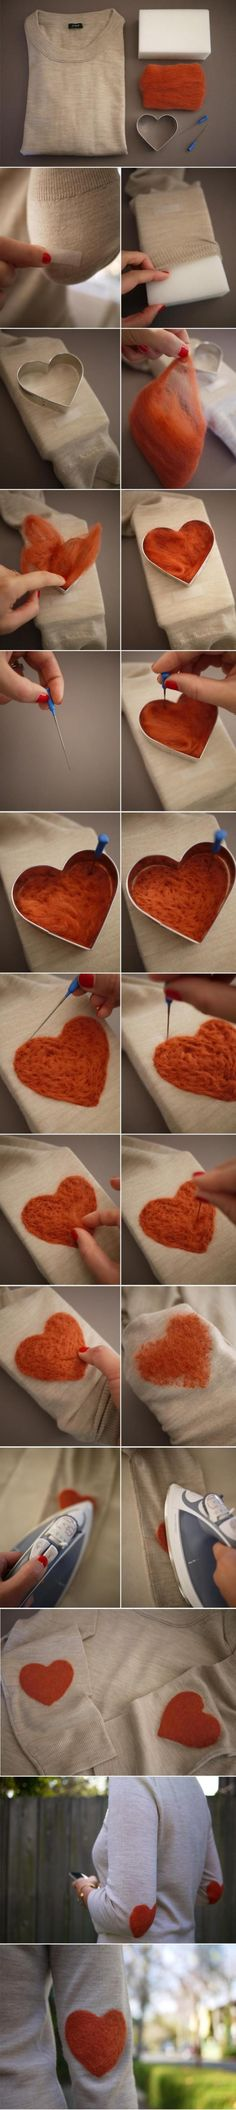 Elbow patches #DIY <<< OH THIS IS CUUUUUTE!